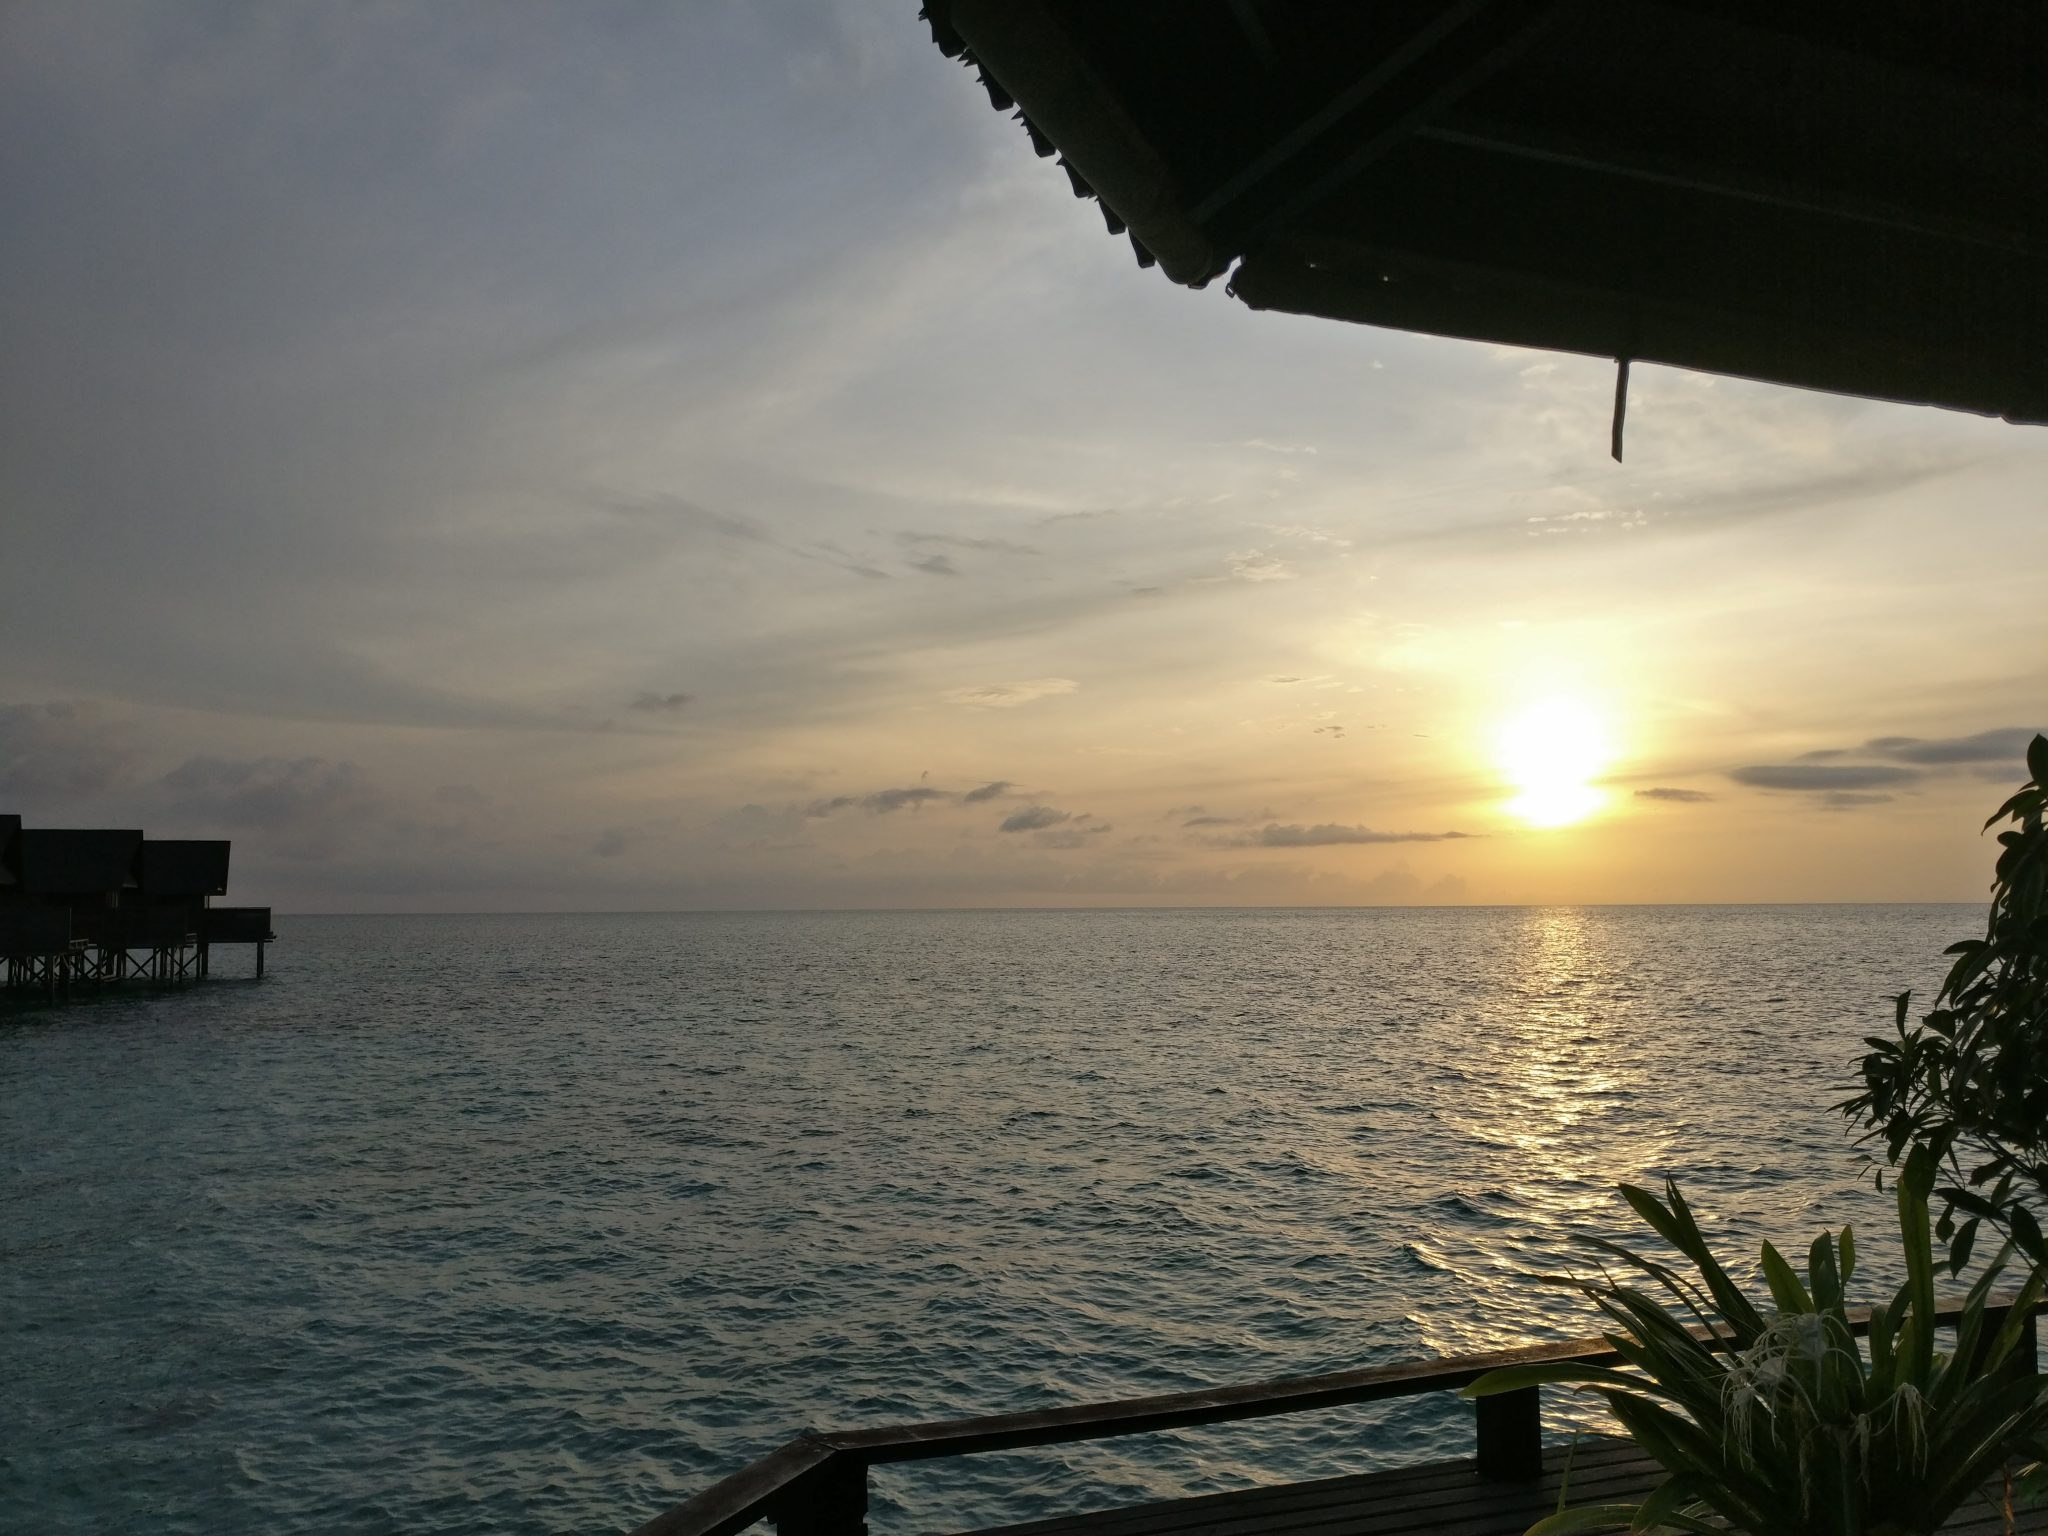 A Lankayan sunset as seen from the main building of Lankayan Island Resort.